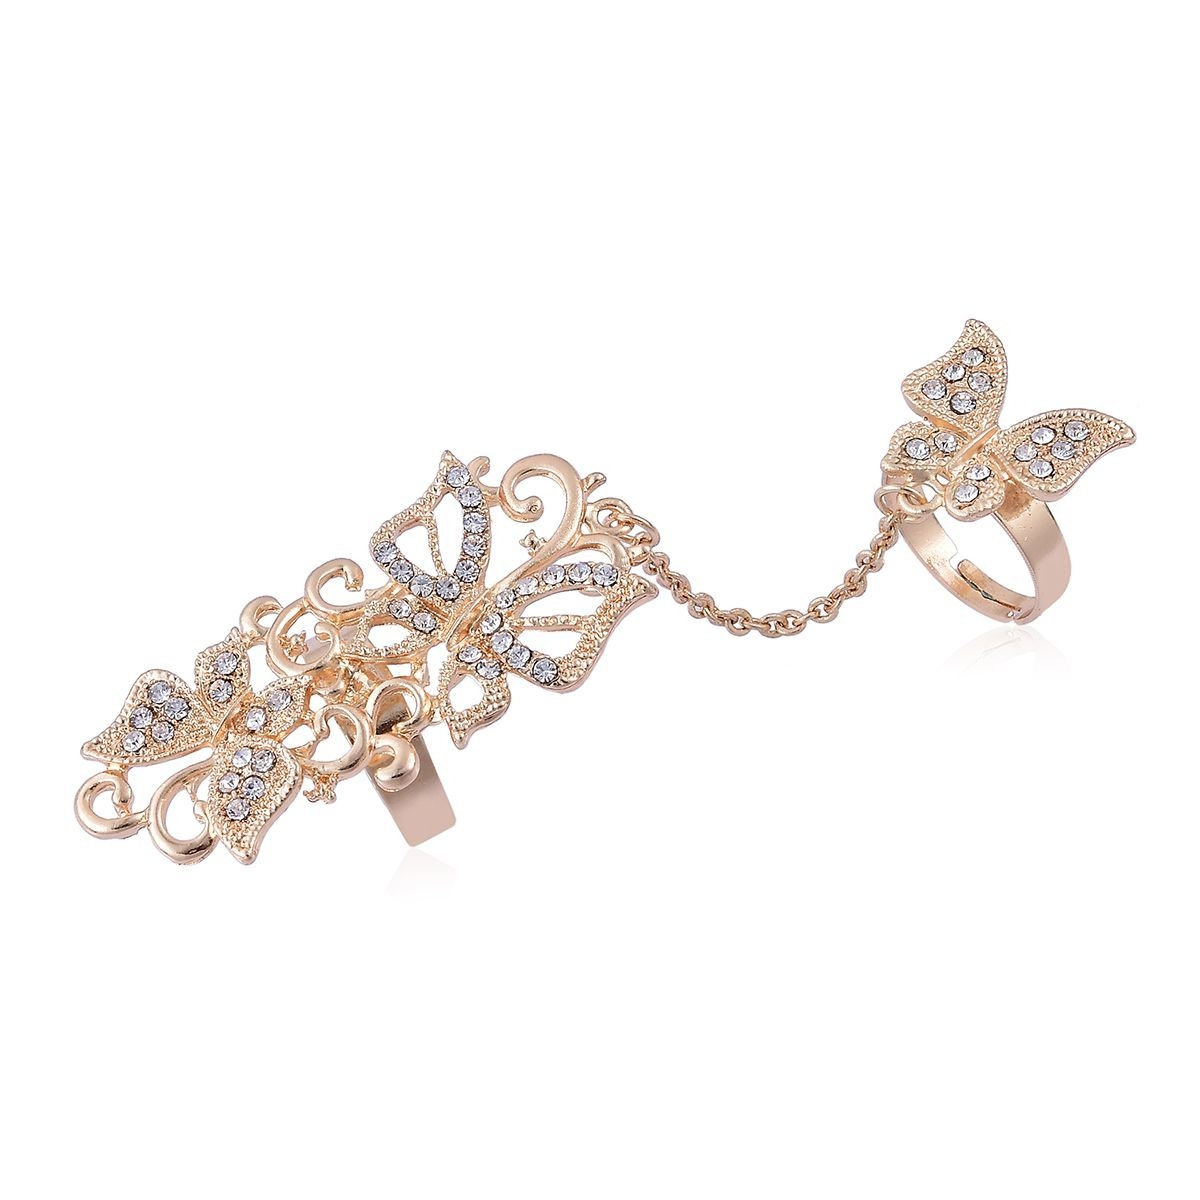 Austrian Crystal Goldtone Chain Linking Double Finger Openwork Butterfly  Ring (Adjustable) With Regard To 2018 Openwork Butterfly Rings (View 7 of 25)